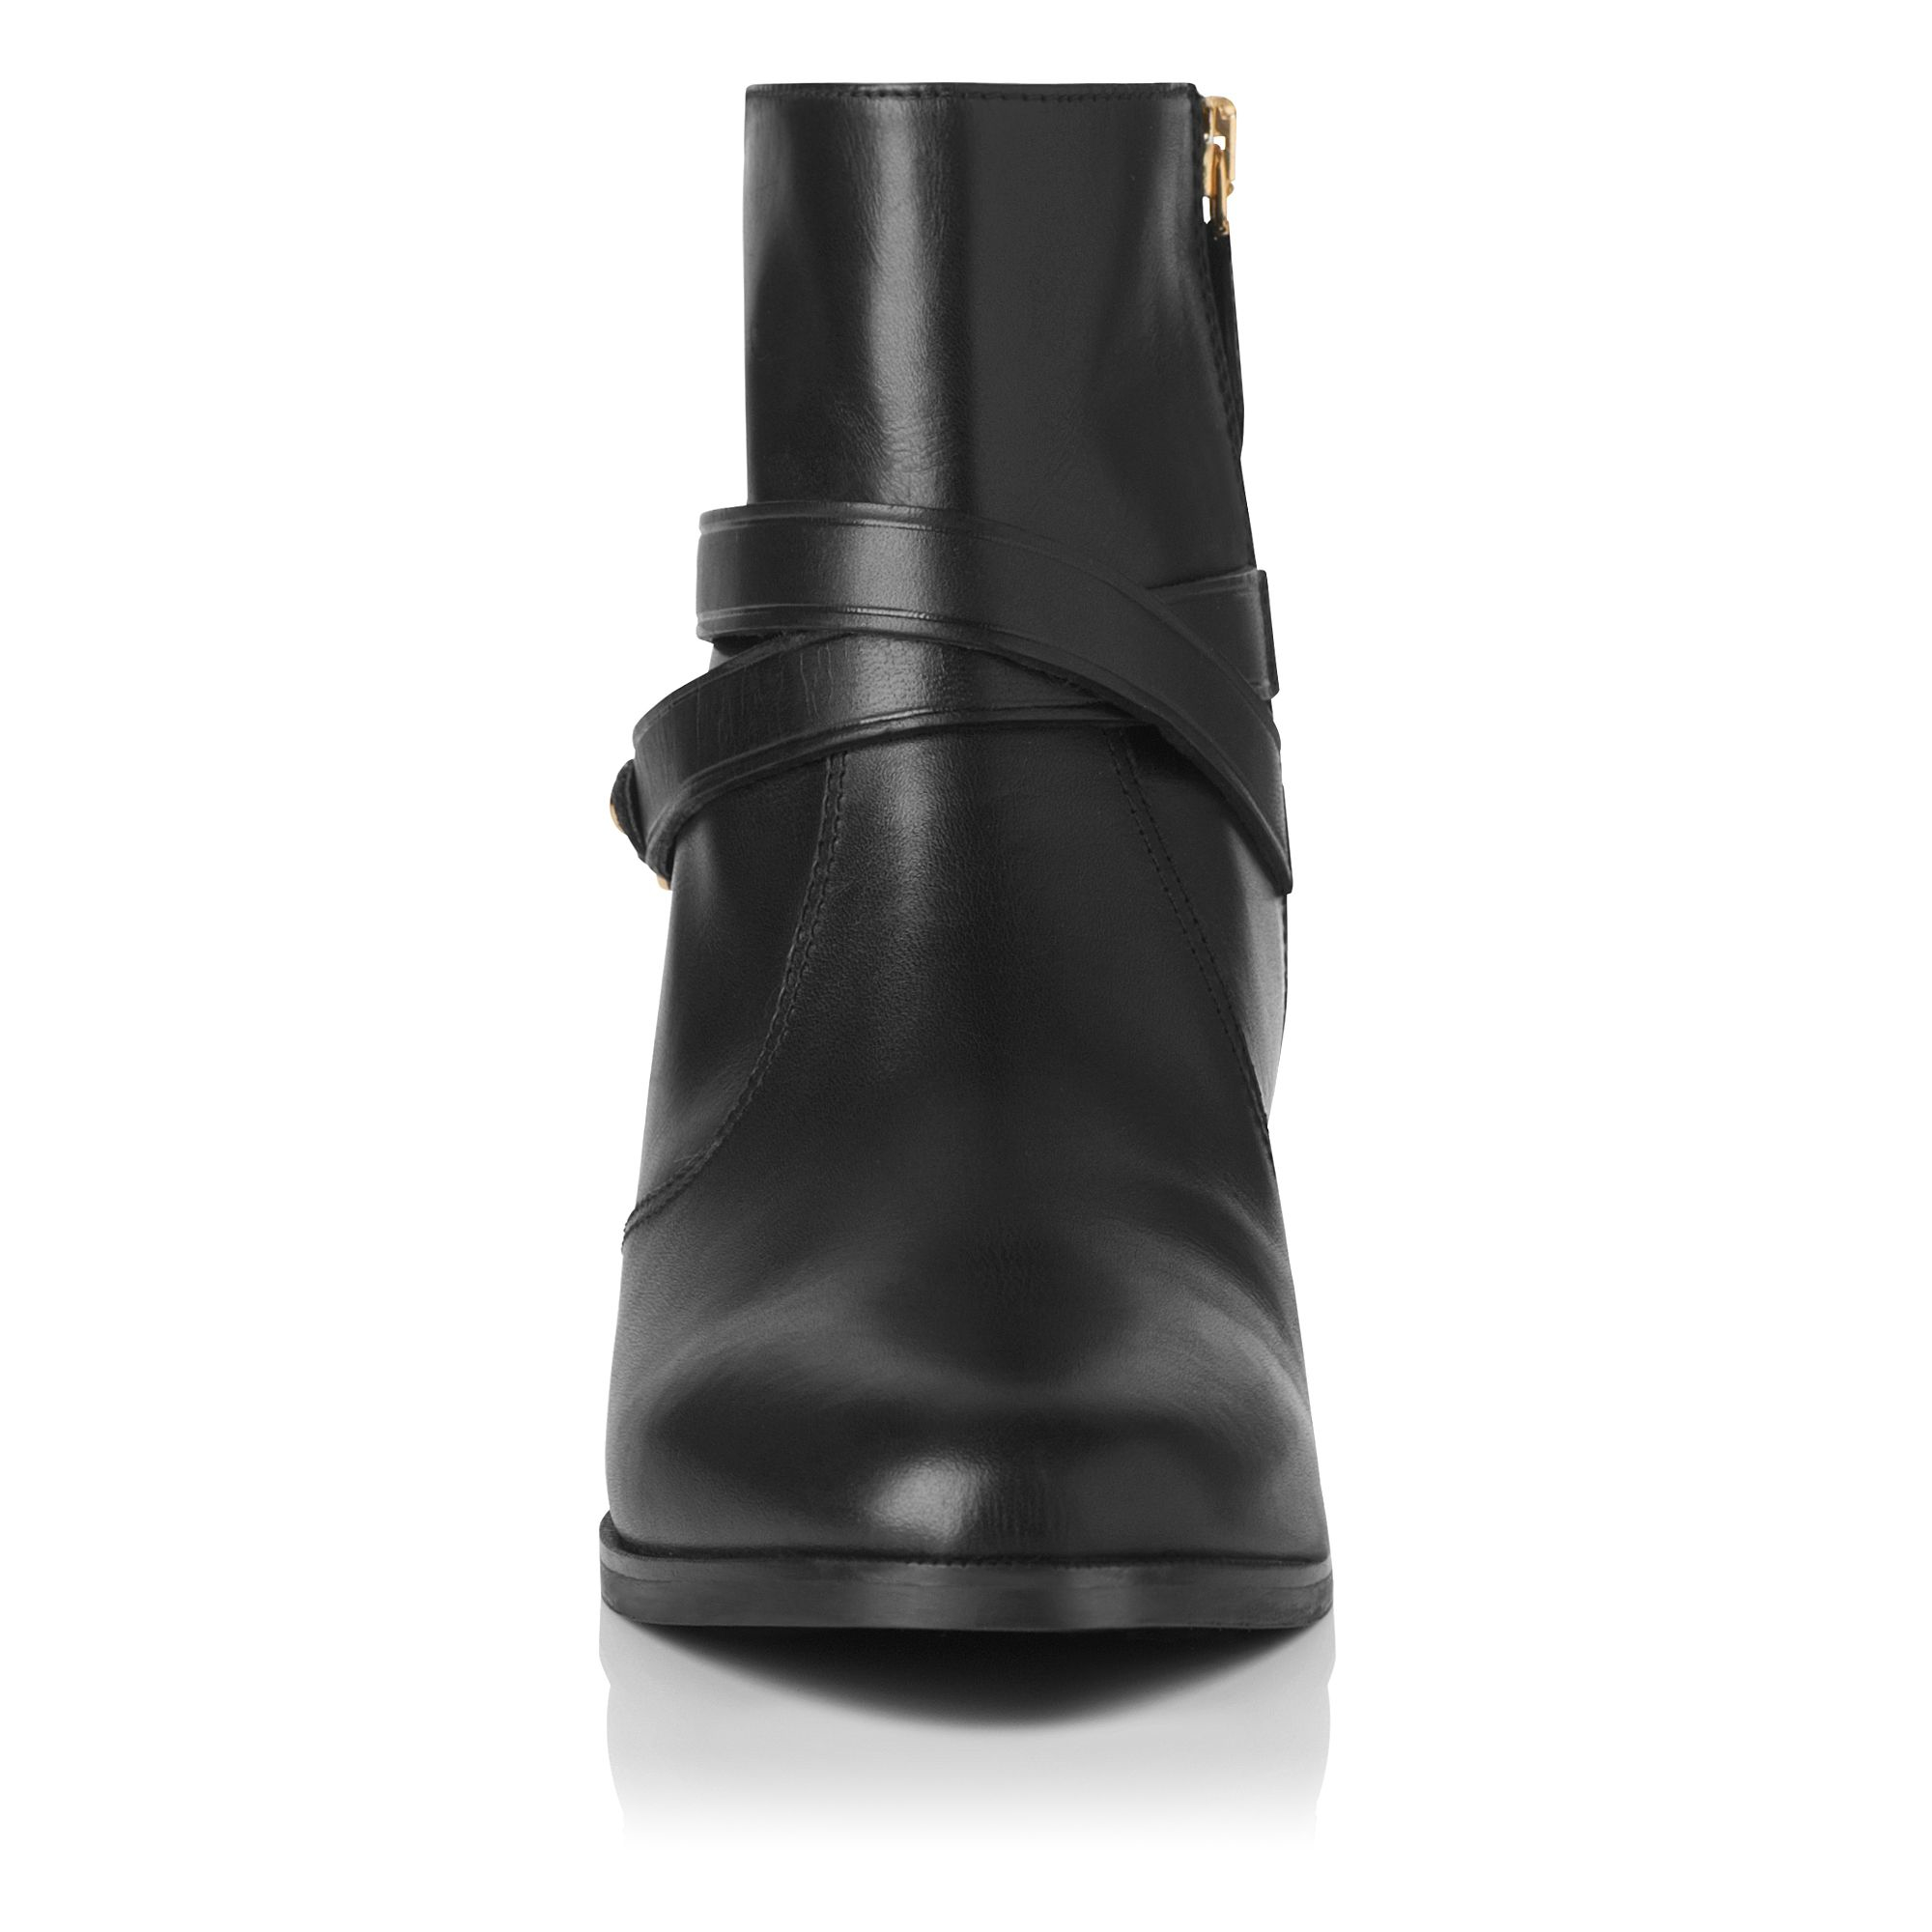 L.K.Bennett Leather Romilly Ankle Boot in Black